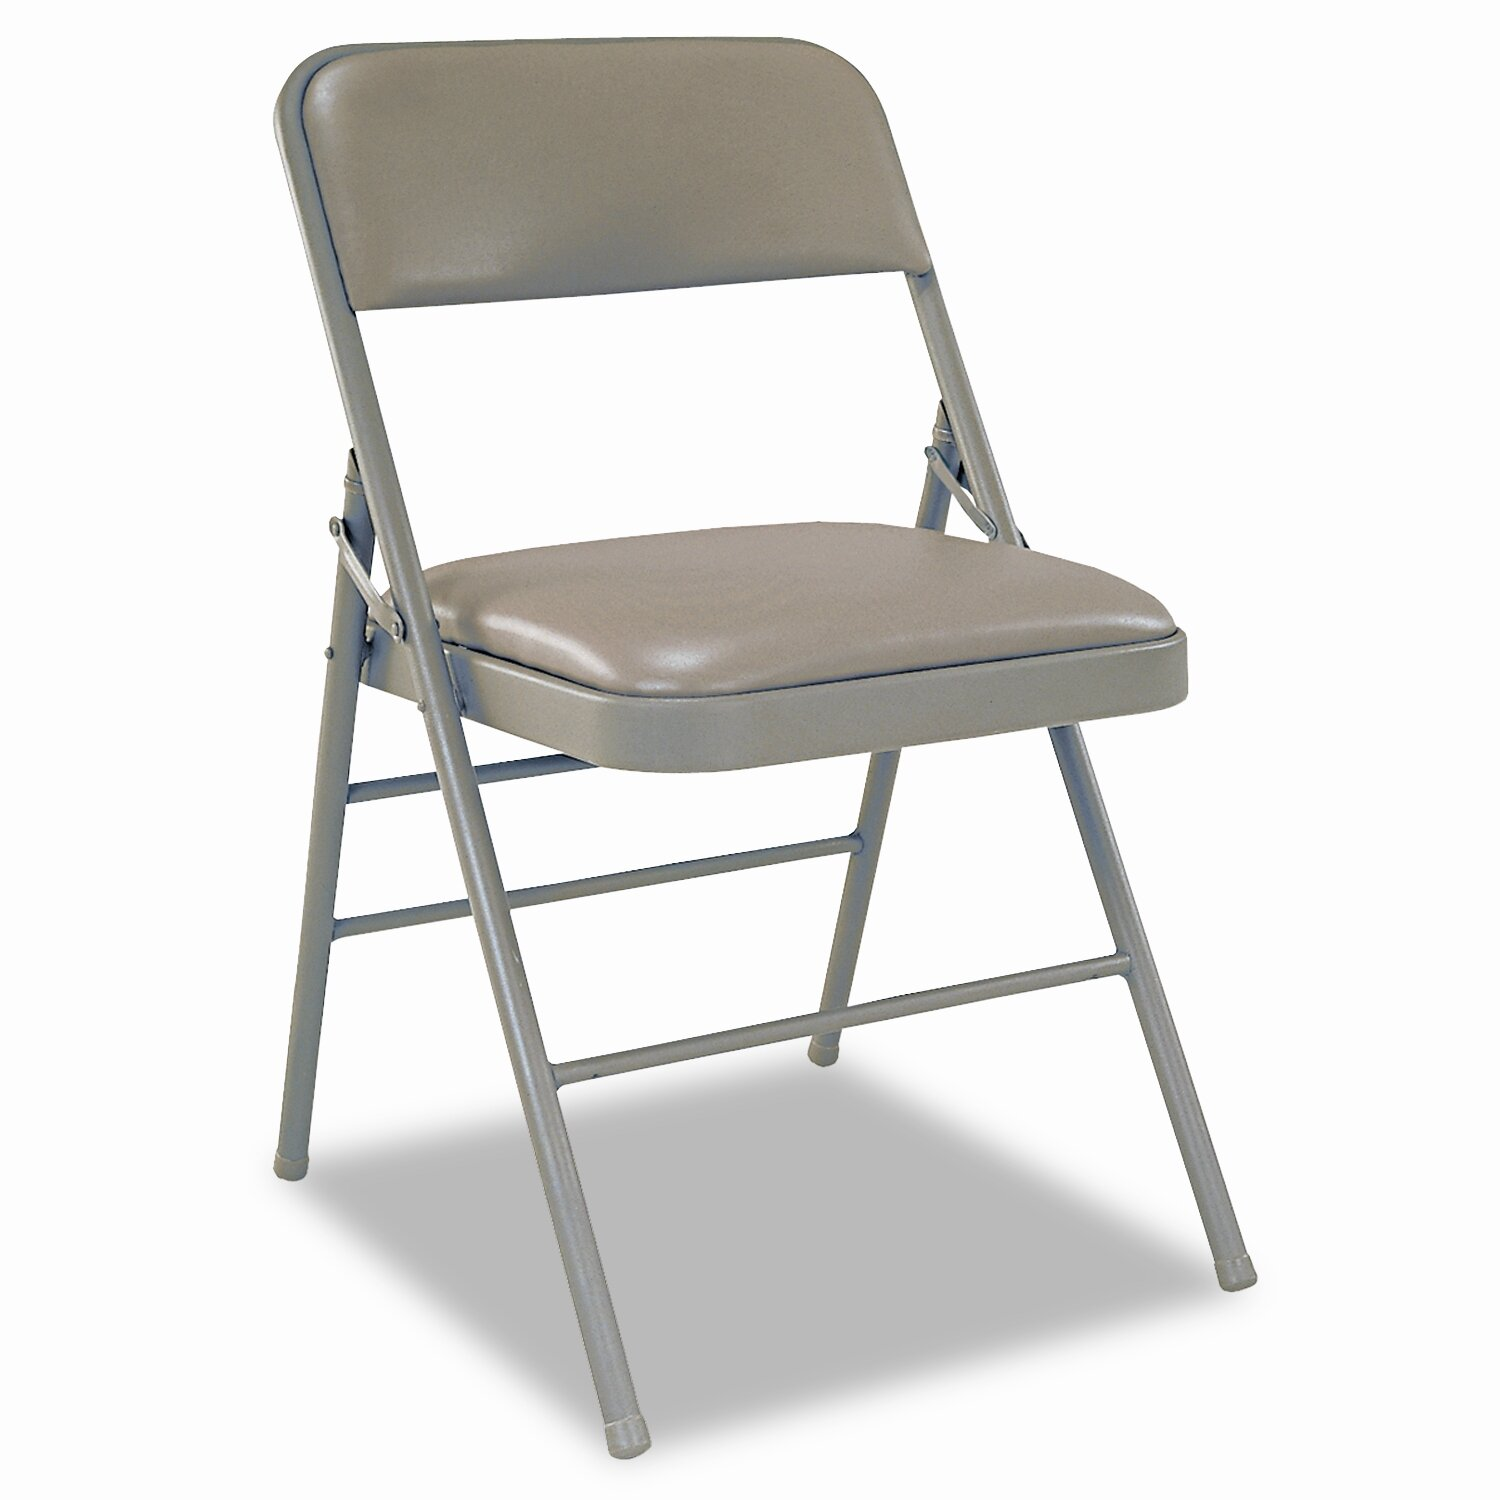 Attirant Cosco Deluxe Vinyl Padded Seat And Back Folding Chairs, Taupe, Four/Carton  | Wayfair